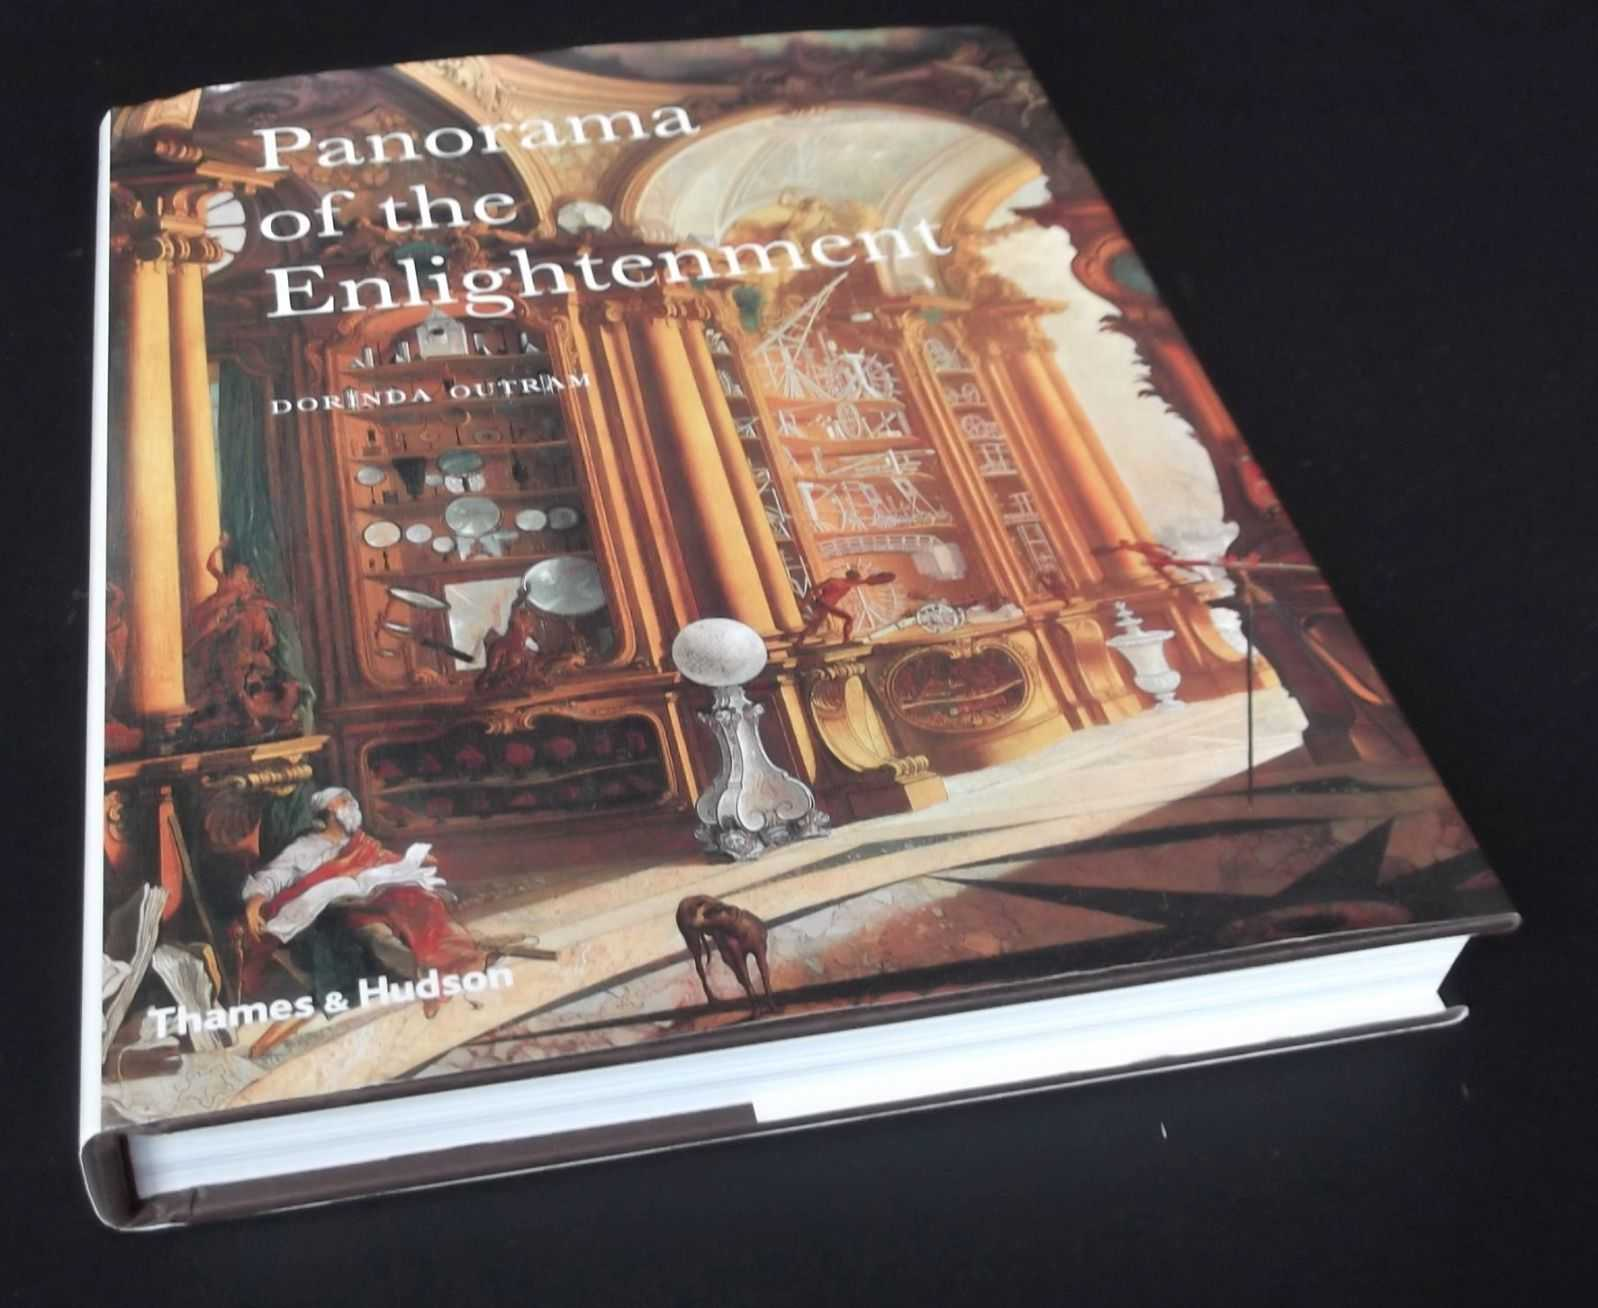 DORINDA OUTRAM - Panorama of the Enlightenment